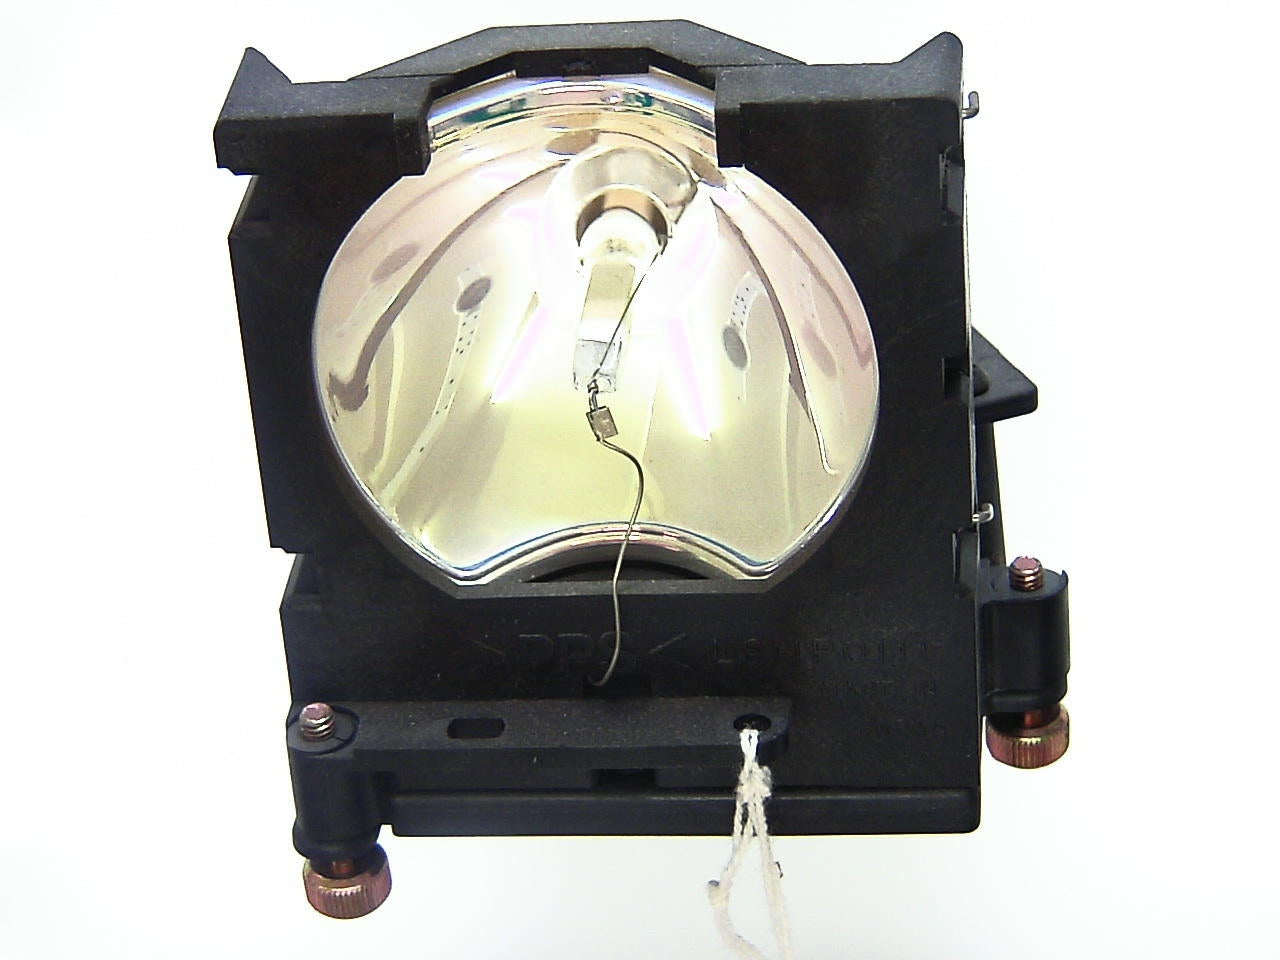 Nview L605 Projector Lamp